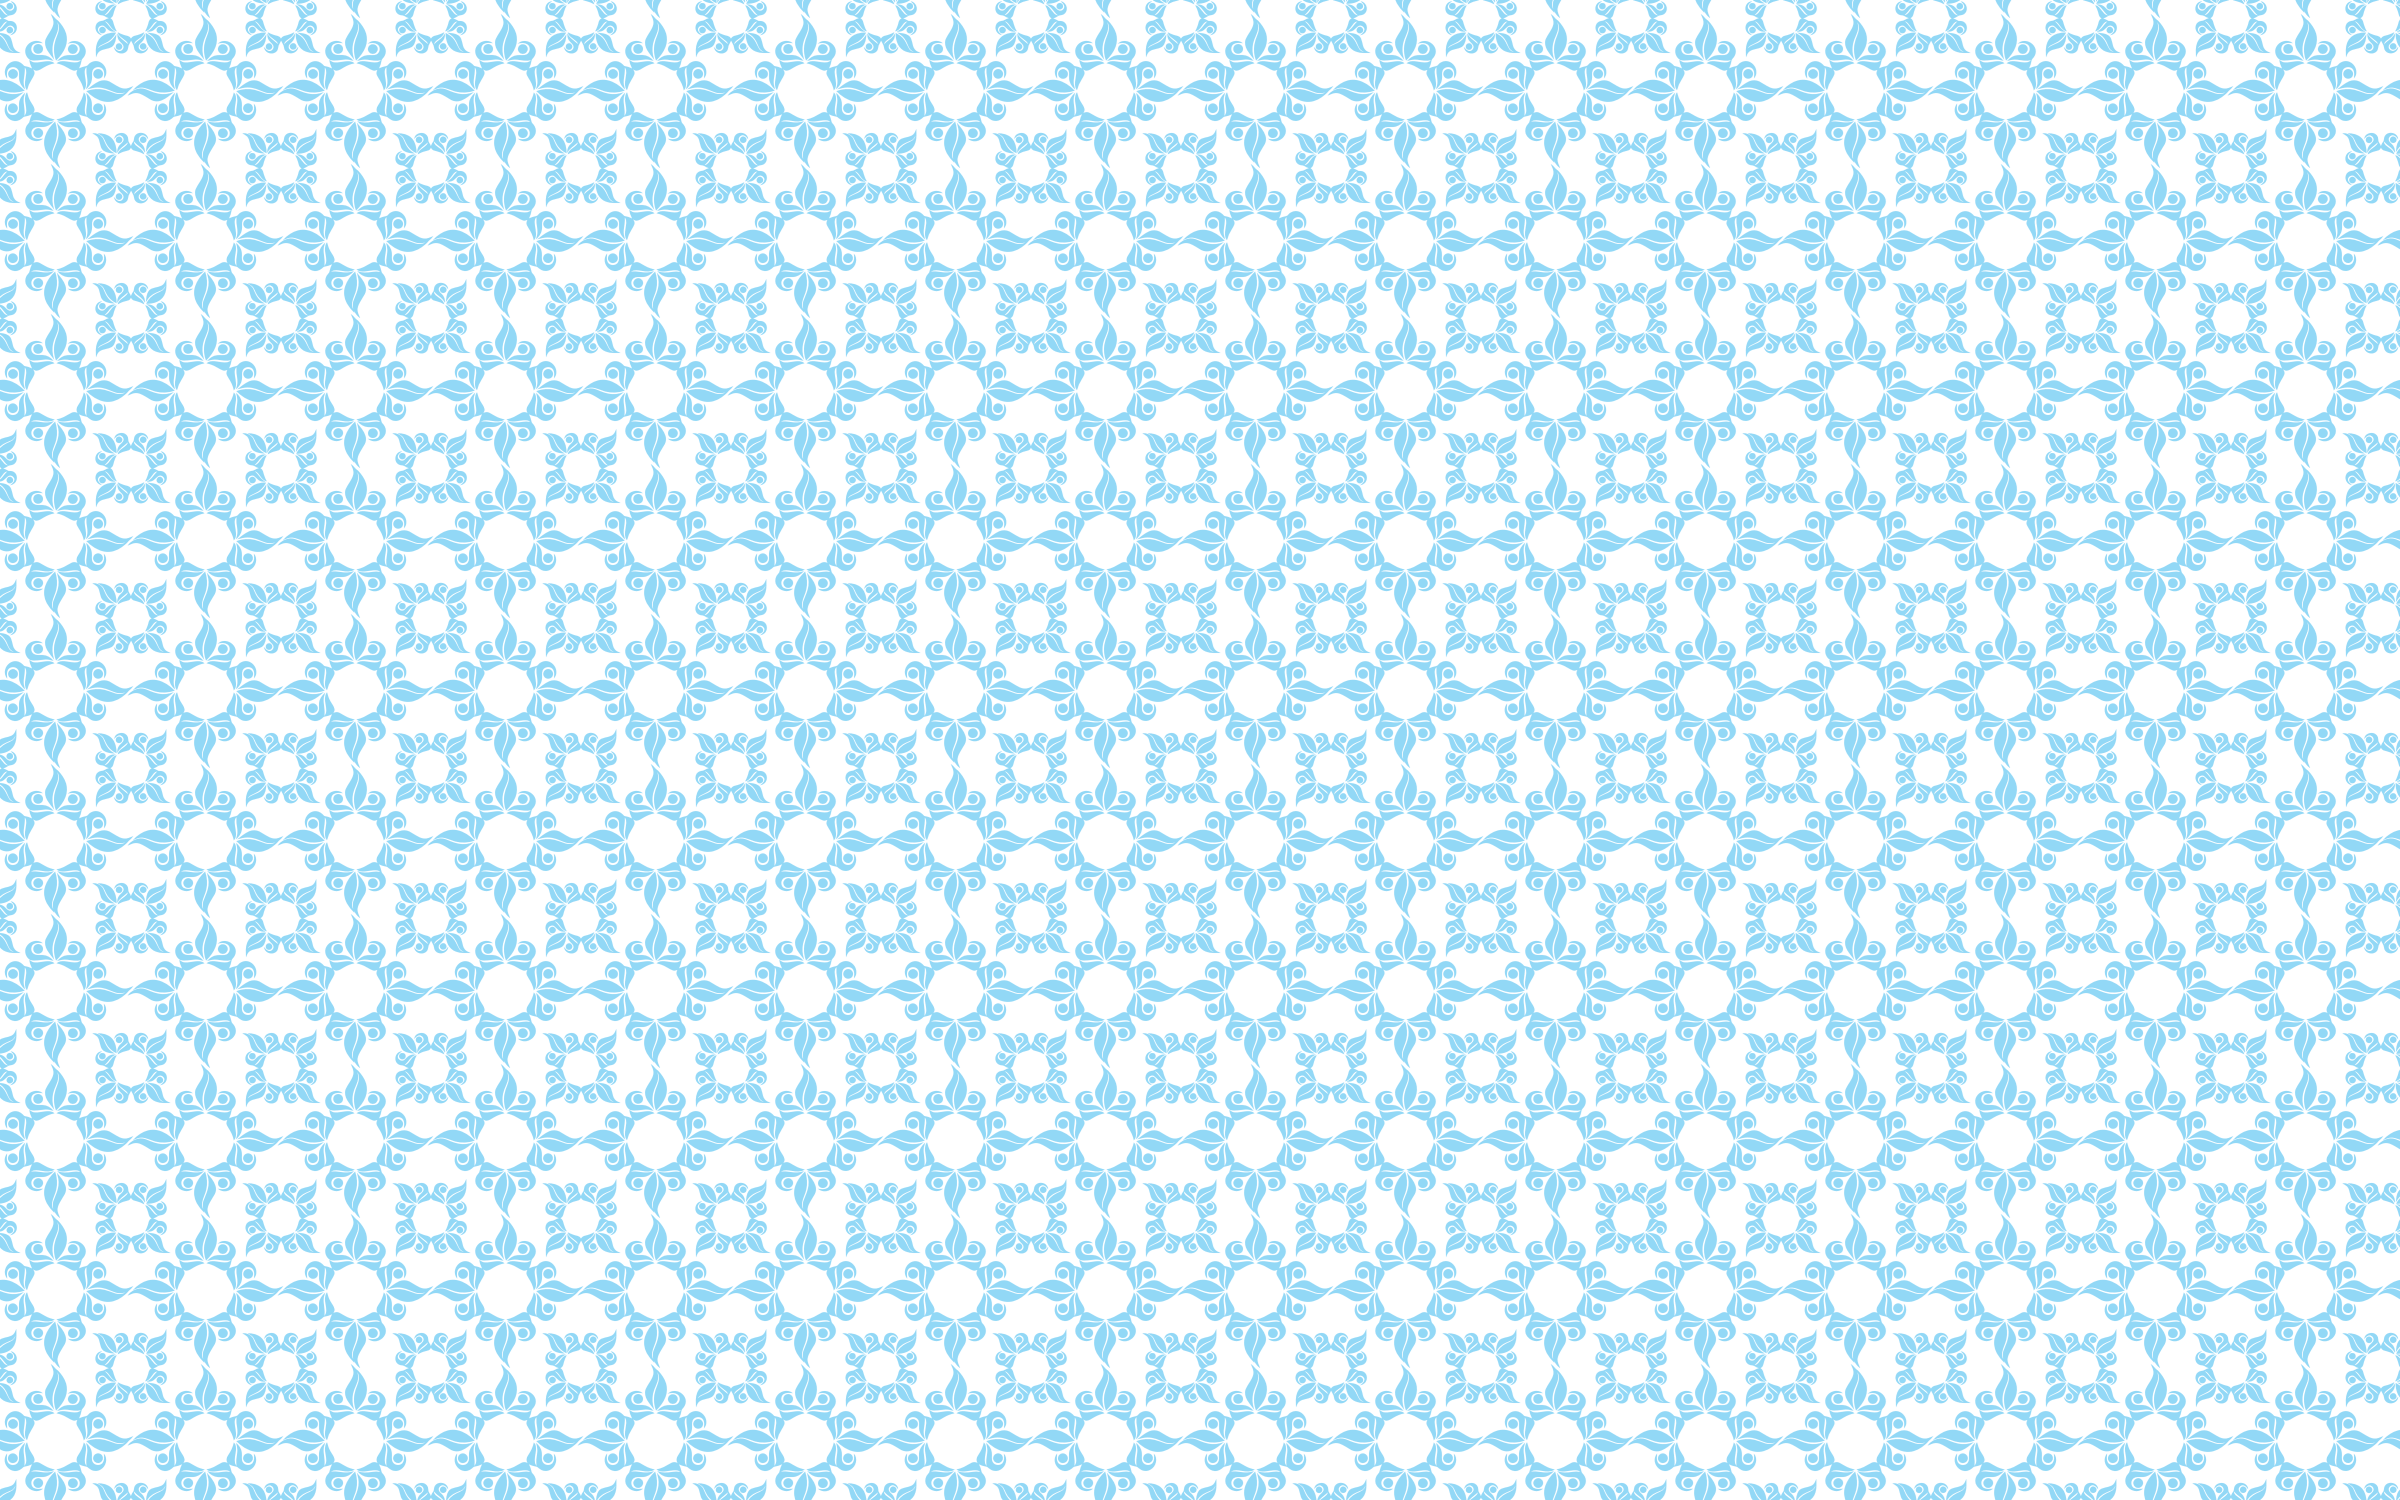 Seamless Geometric Pixabay Pattern by GDJ